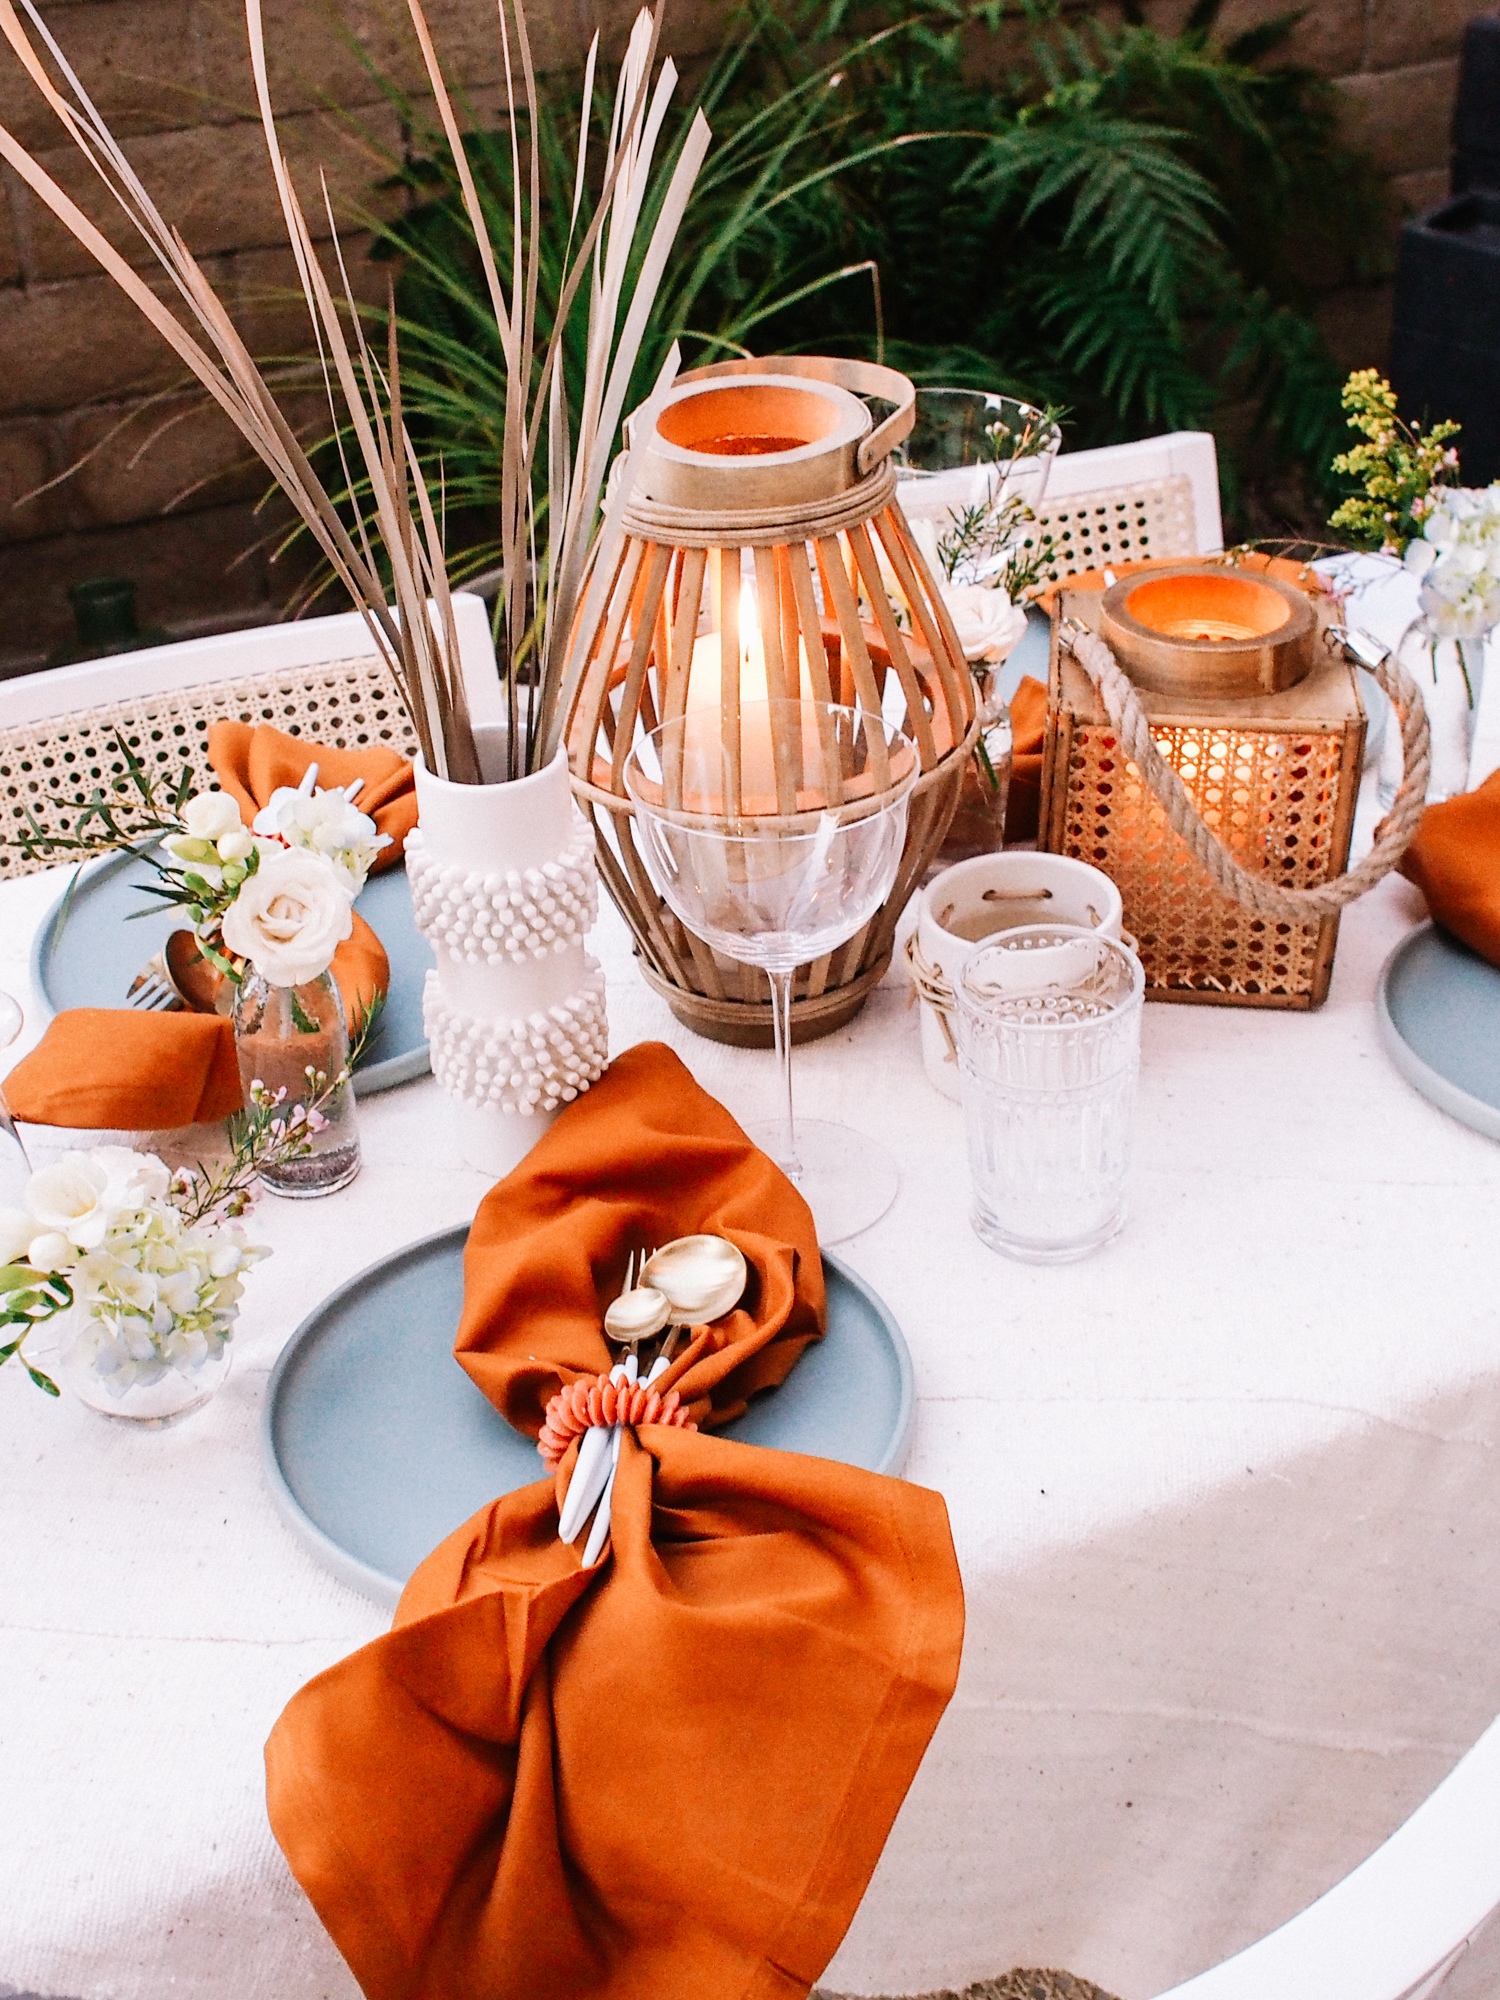 Easy Backyard Dinner | A Fabulous Fete